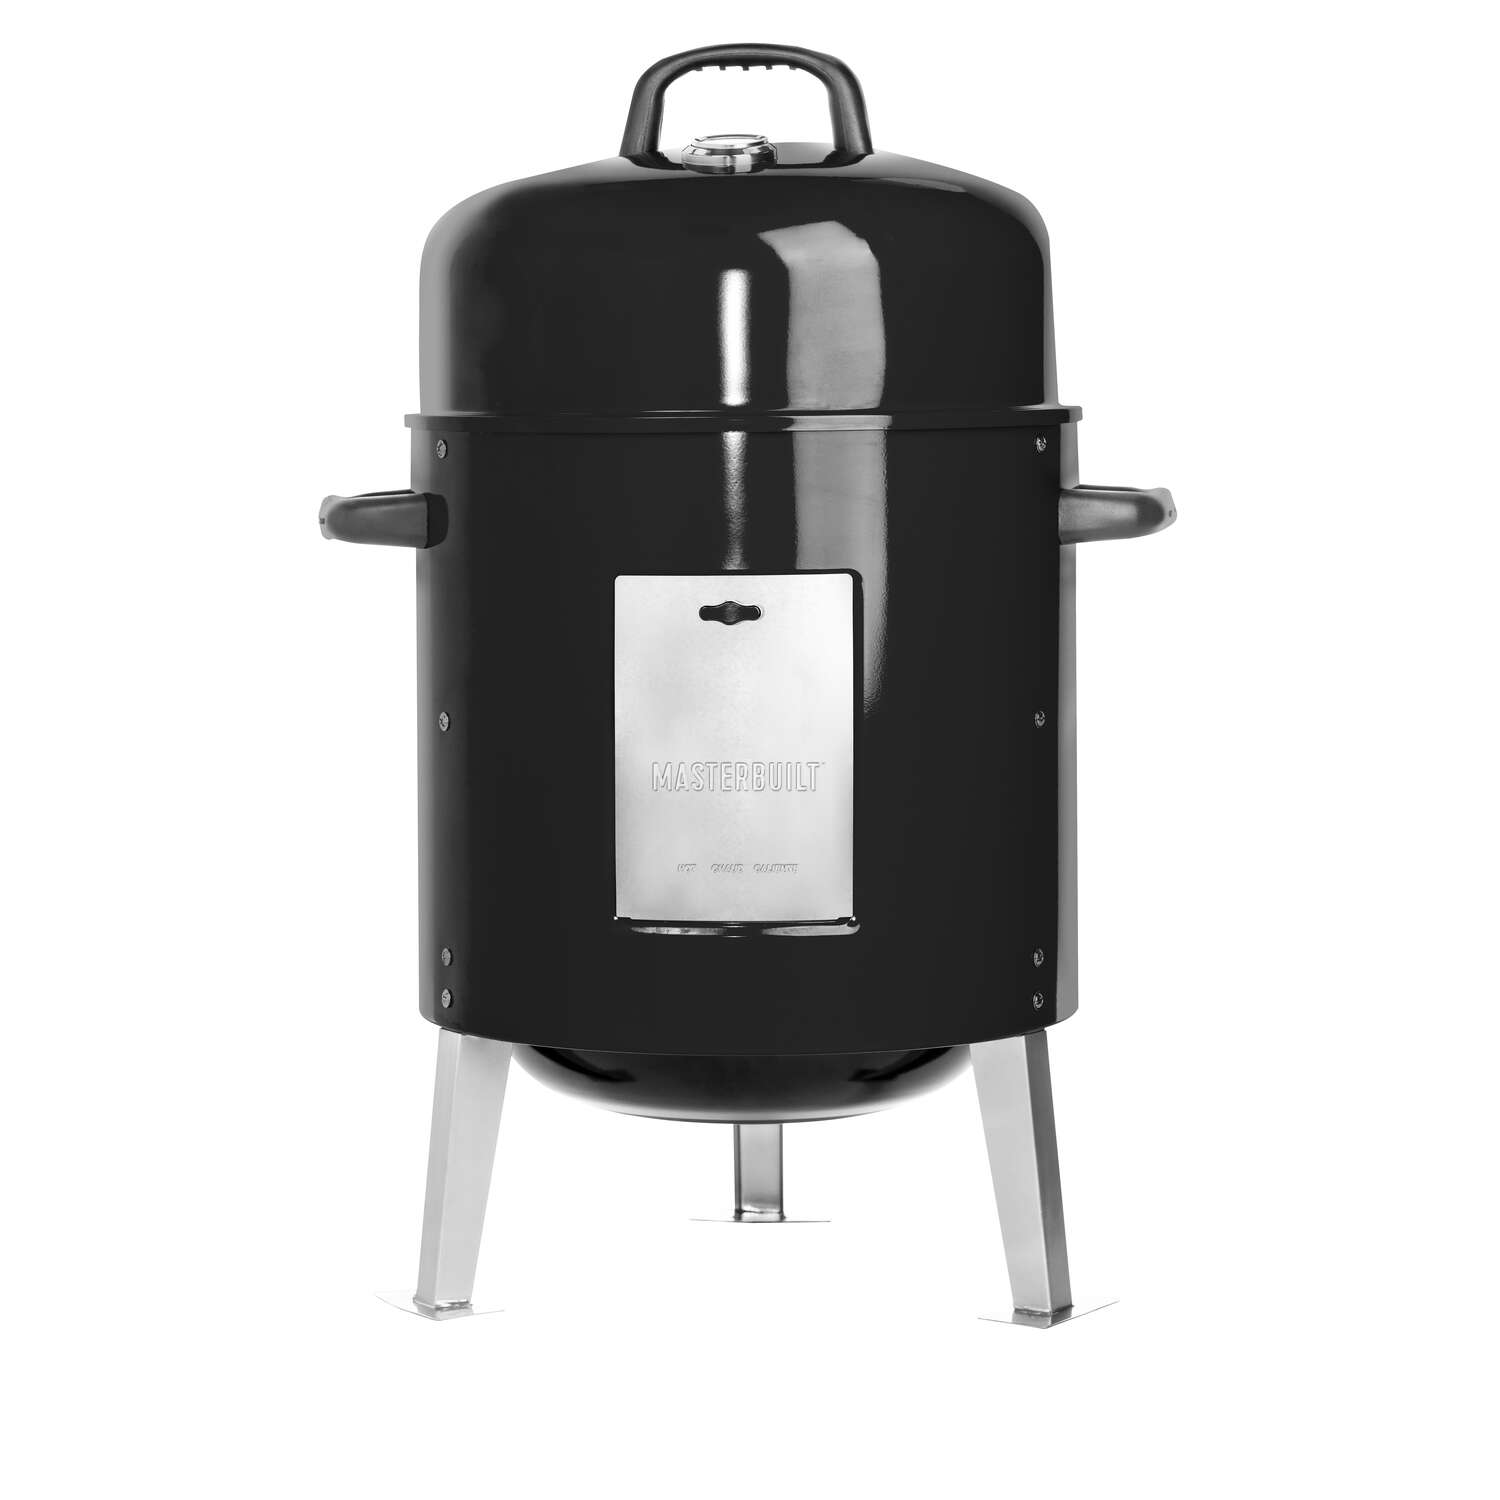 Masterbuilt  Charcoal/Wood  Bullet  Smoker  Black